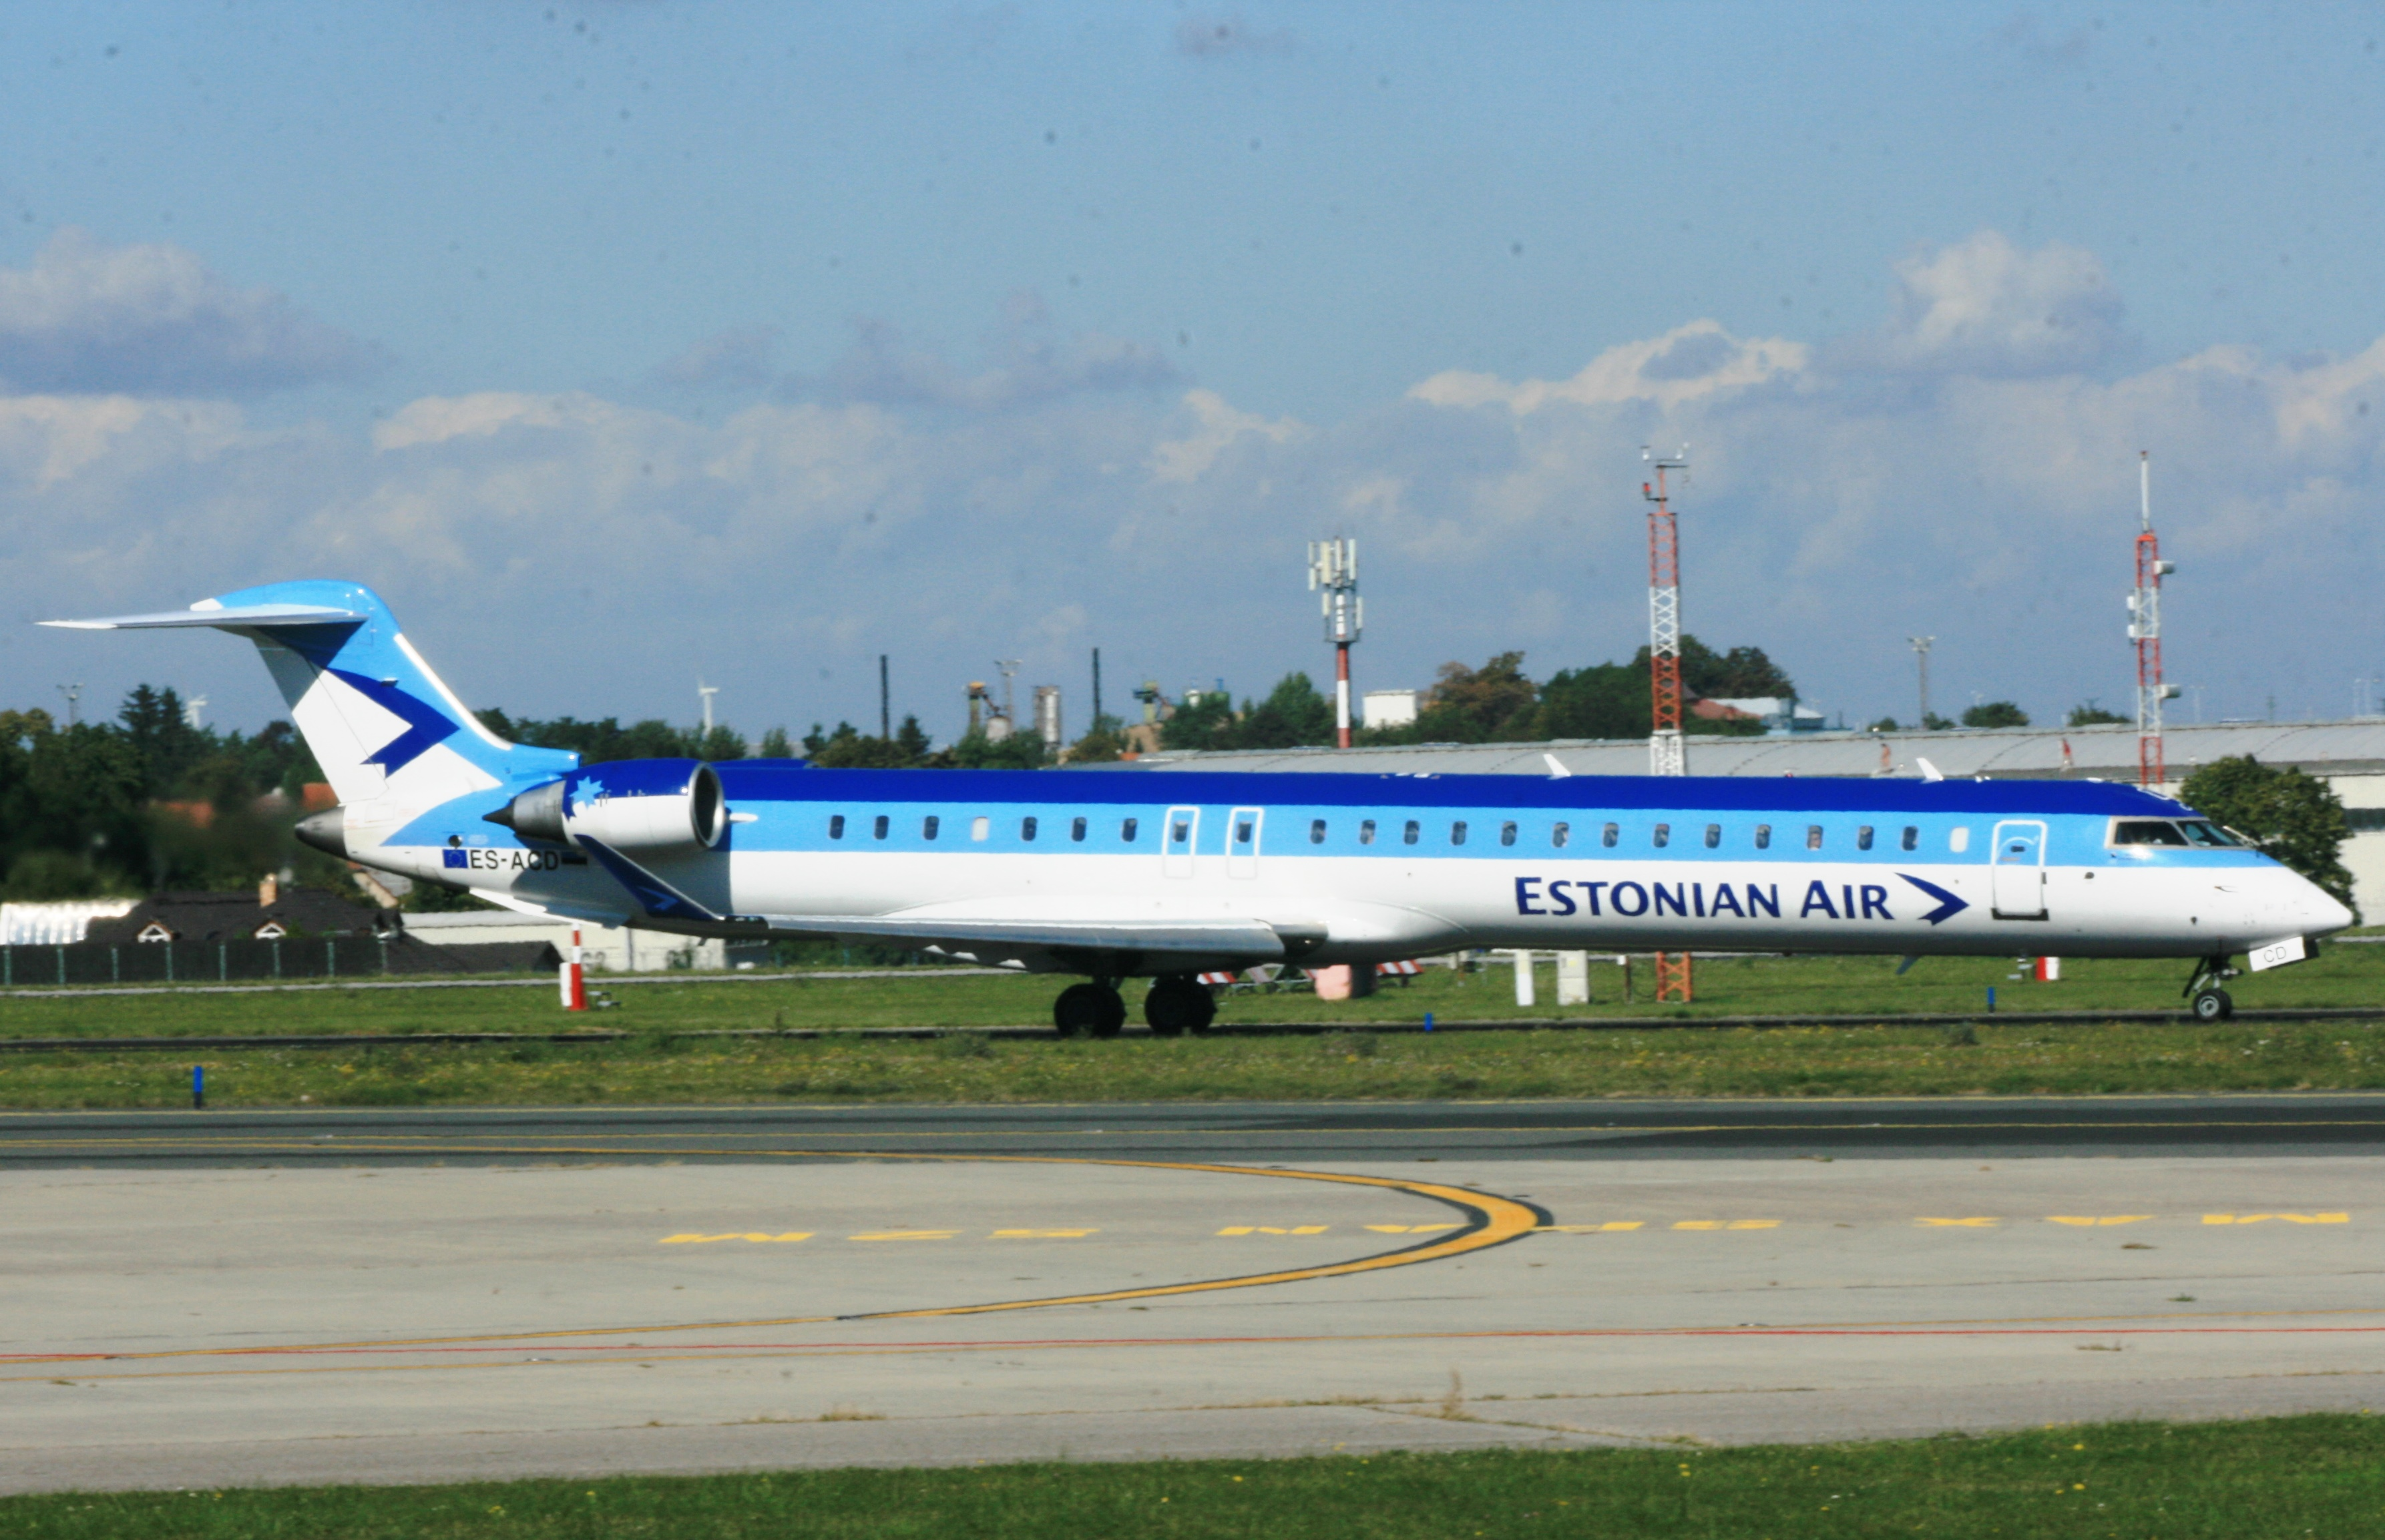 Estonian Air (IMG5930 JL)